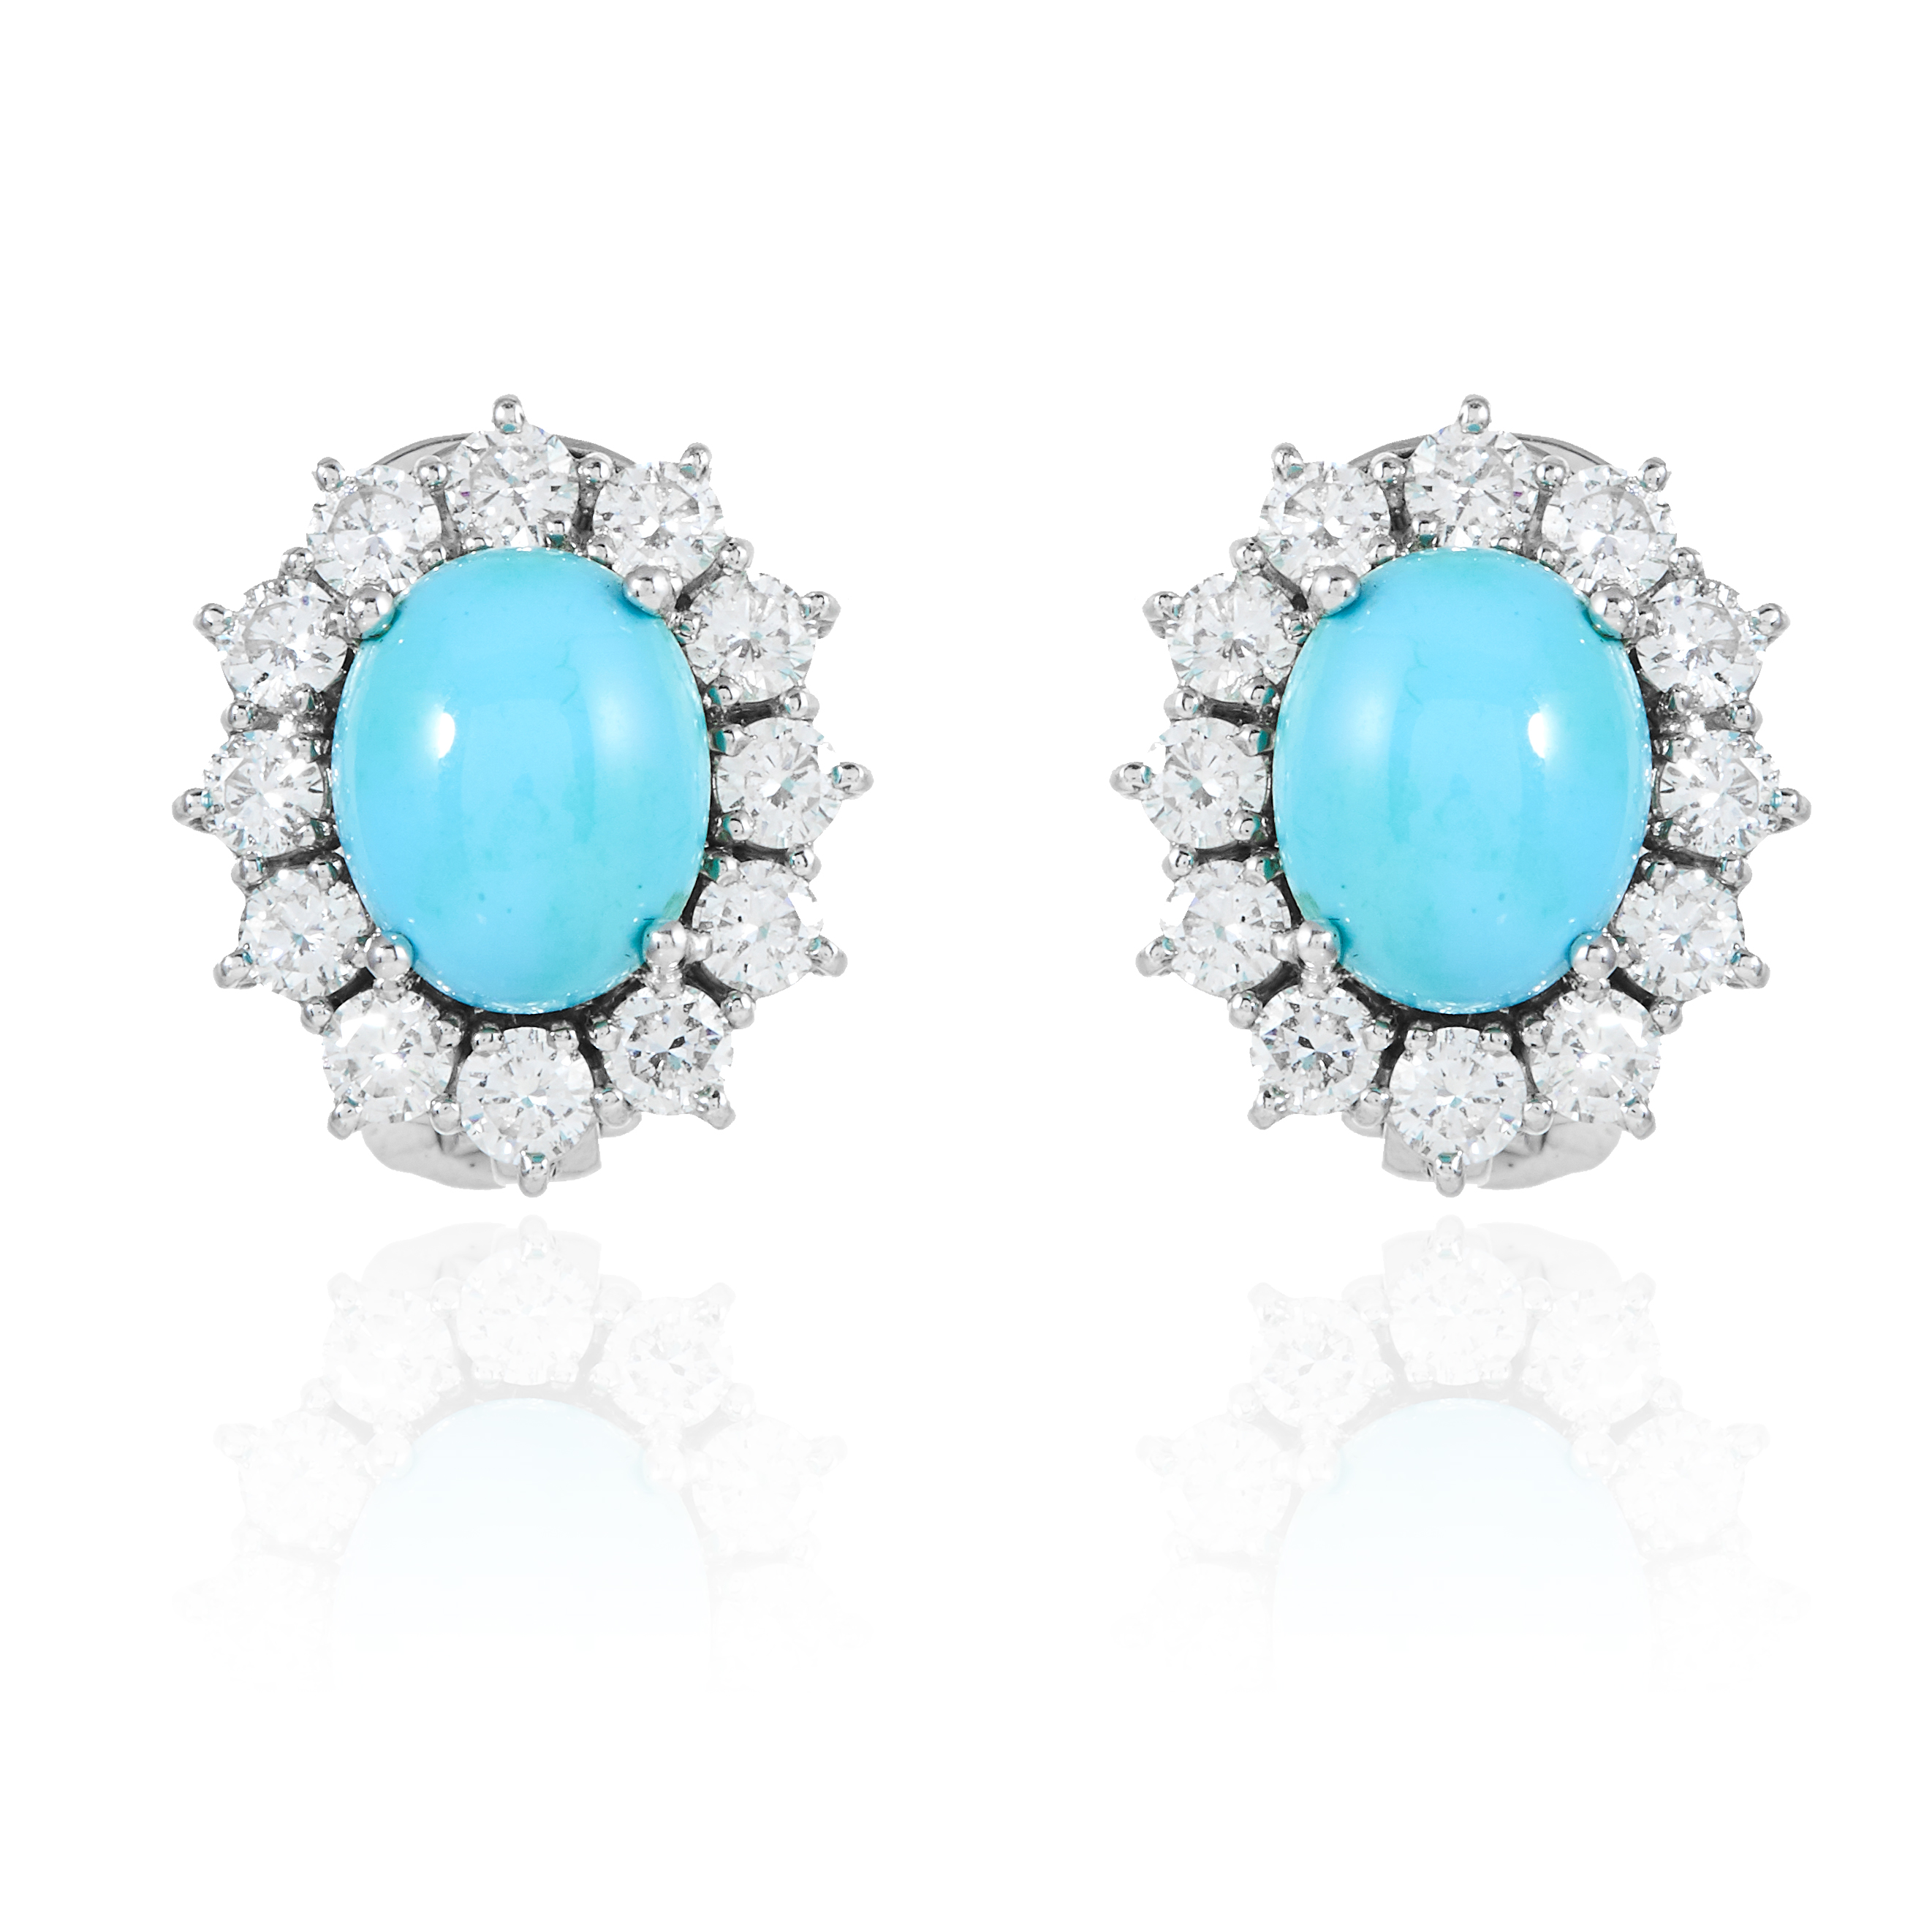 A PAIR OF TURQUOISE AND DIAMOND CLUSTER EARRINGS, in gold or platinum, each set with a cabochon